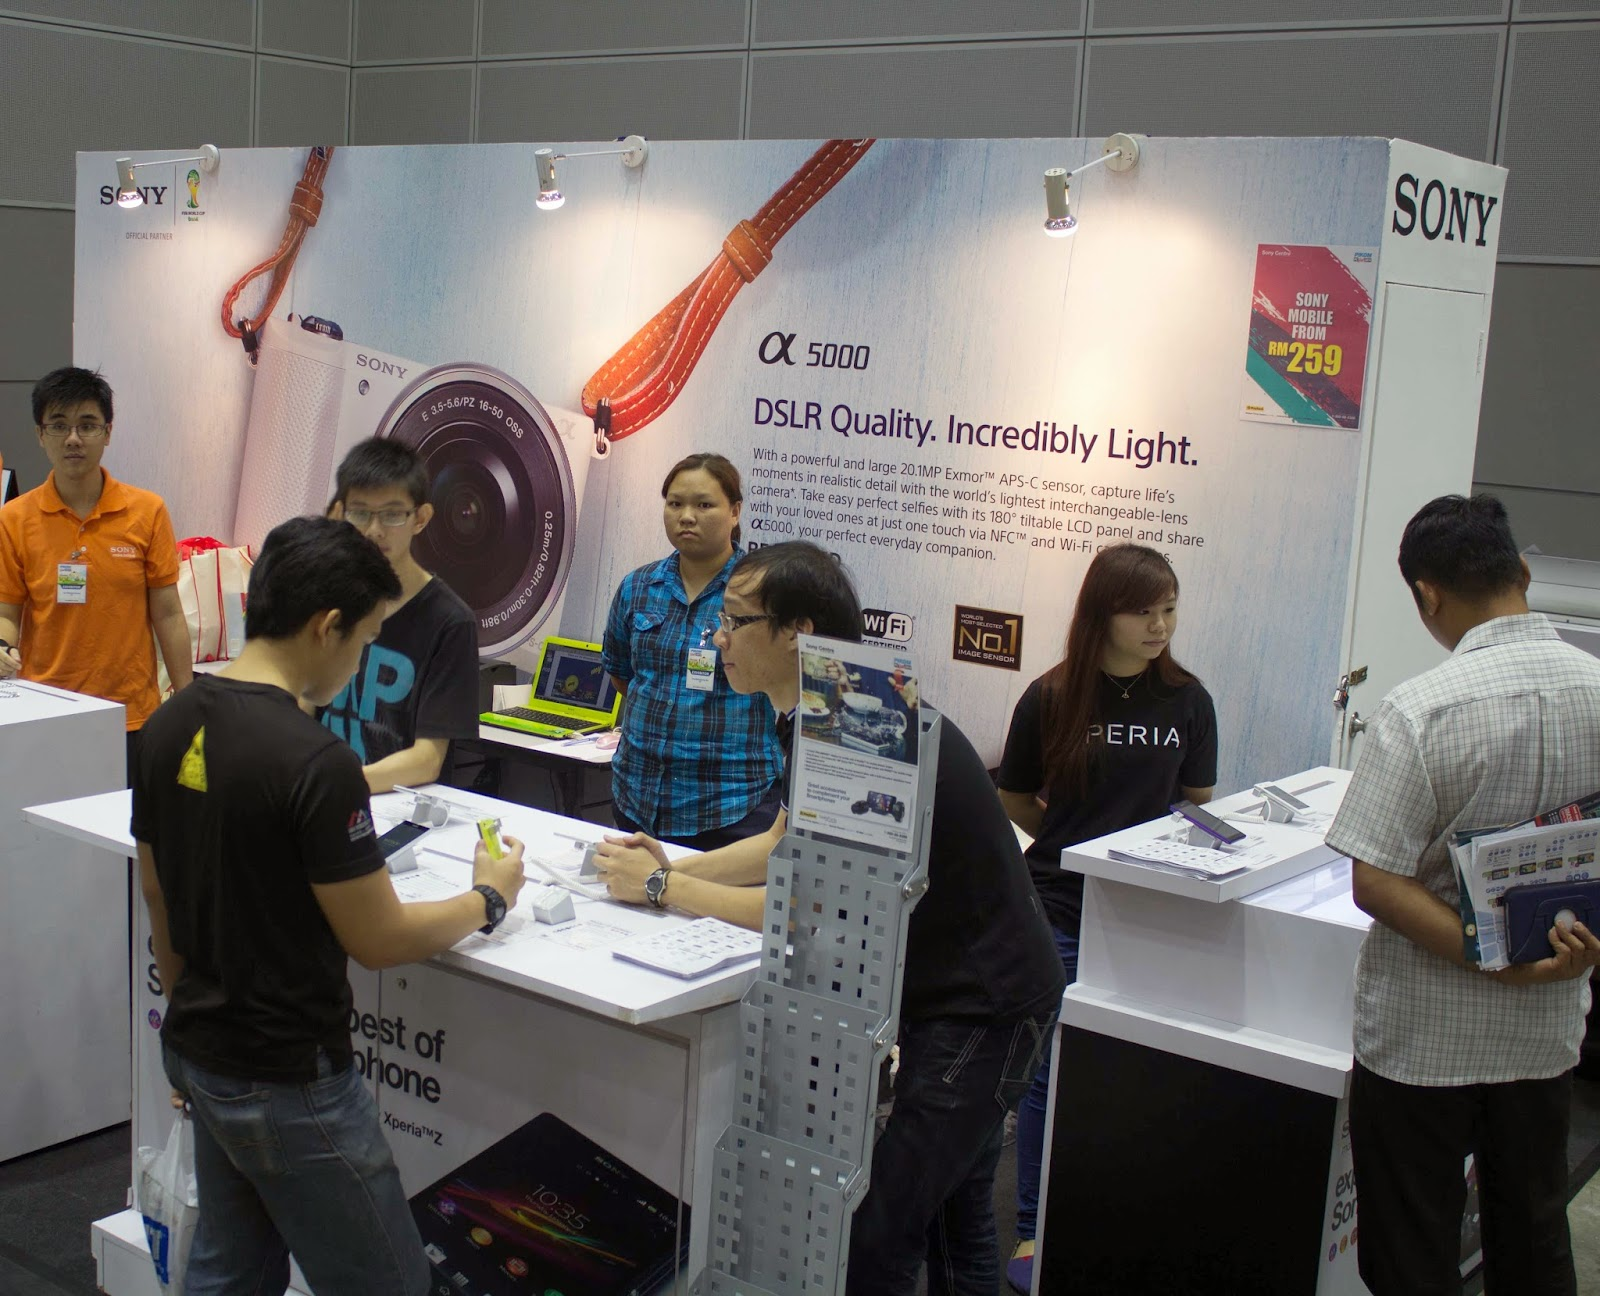 Coverage of PIKOM PC Fair 2014 @ Kuala Lumpur Convention Center 357